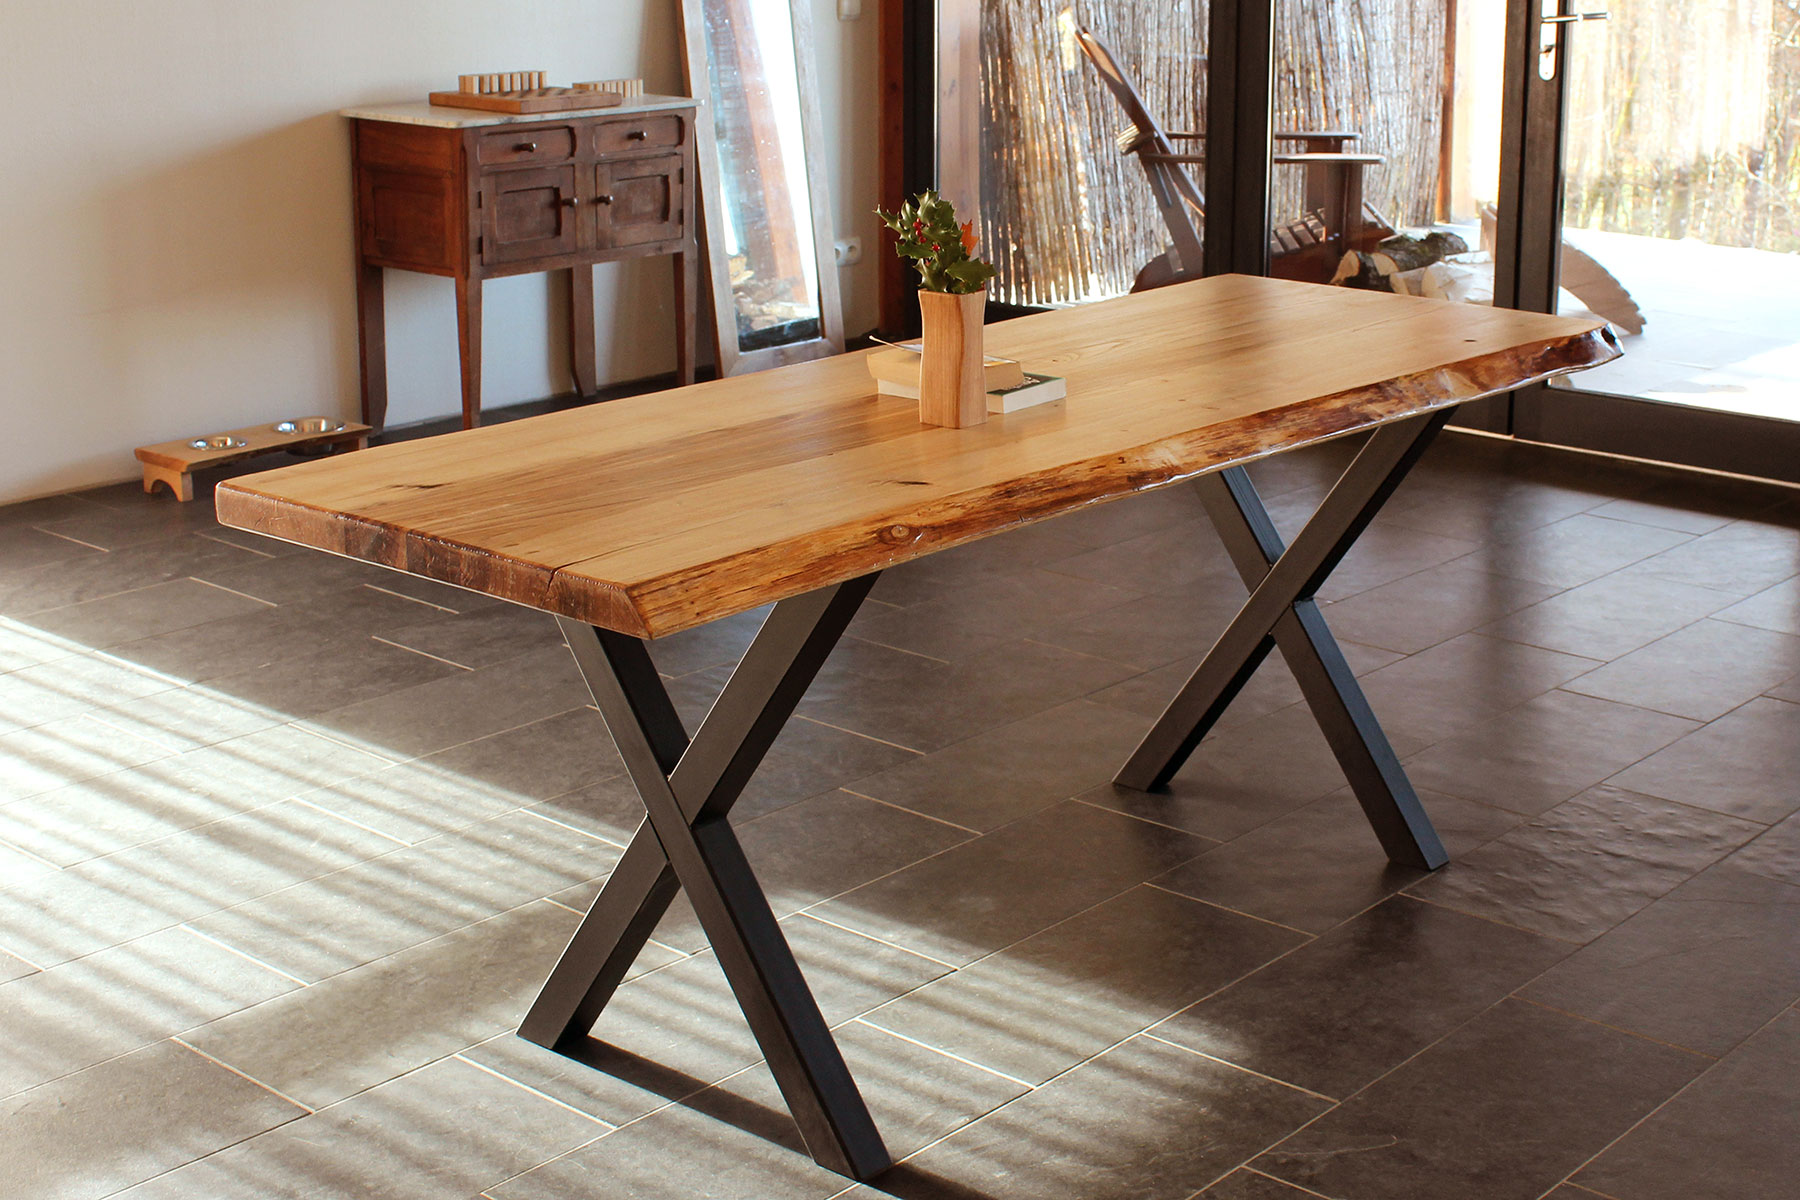 wood-interior-chestnut-dining-table-table-Black-matel-lags- FabsFurniture Designs